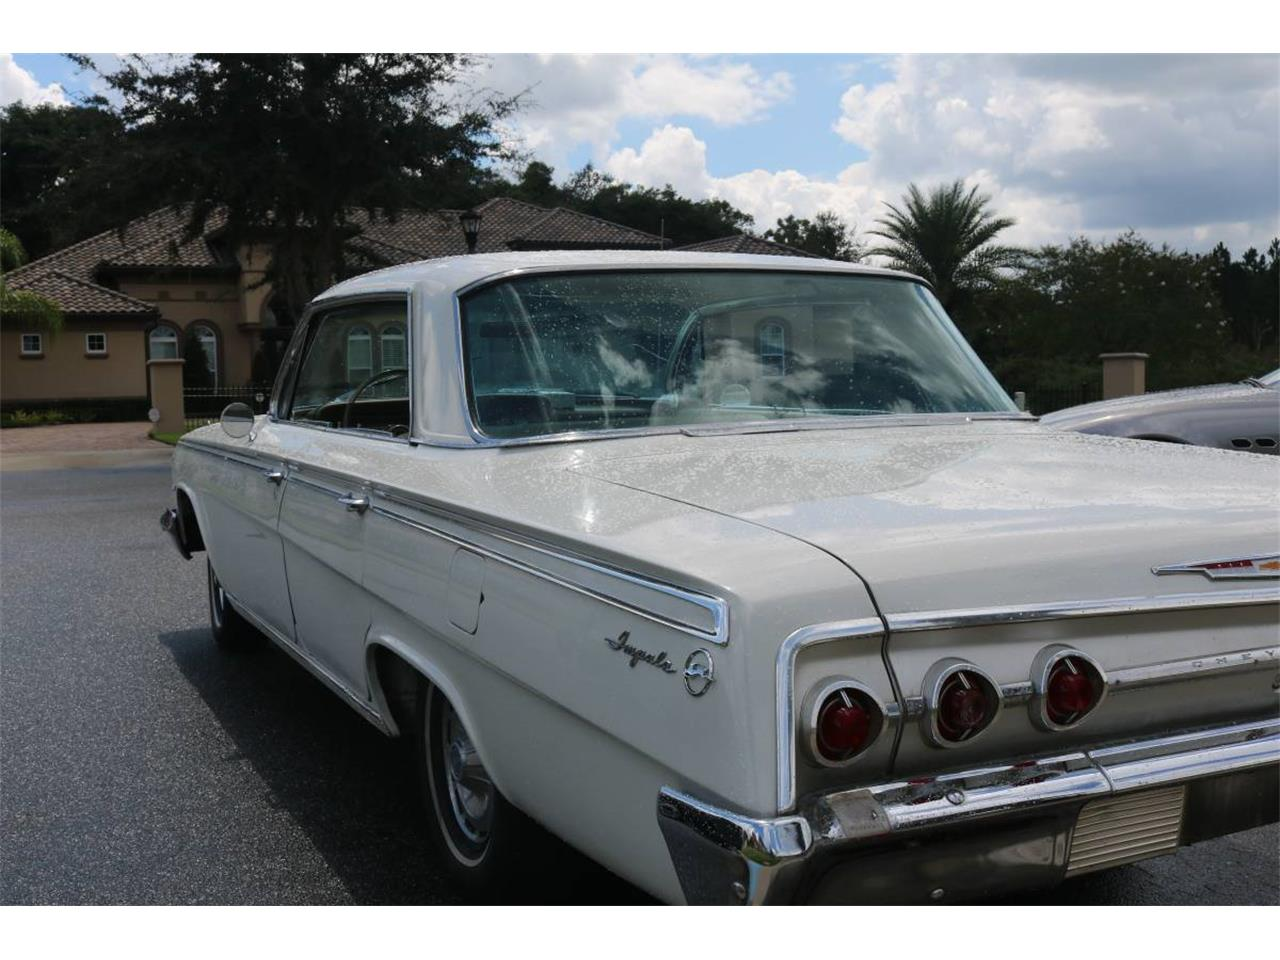 Large Picture of 1962 Chevrolet Impala located in Gotha Florida - $11,995.00 Offered by a Private Seller - JJAL